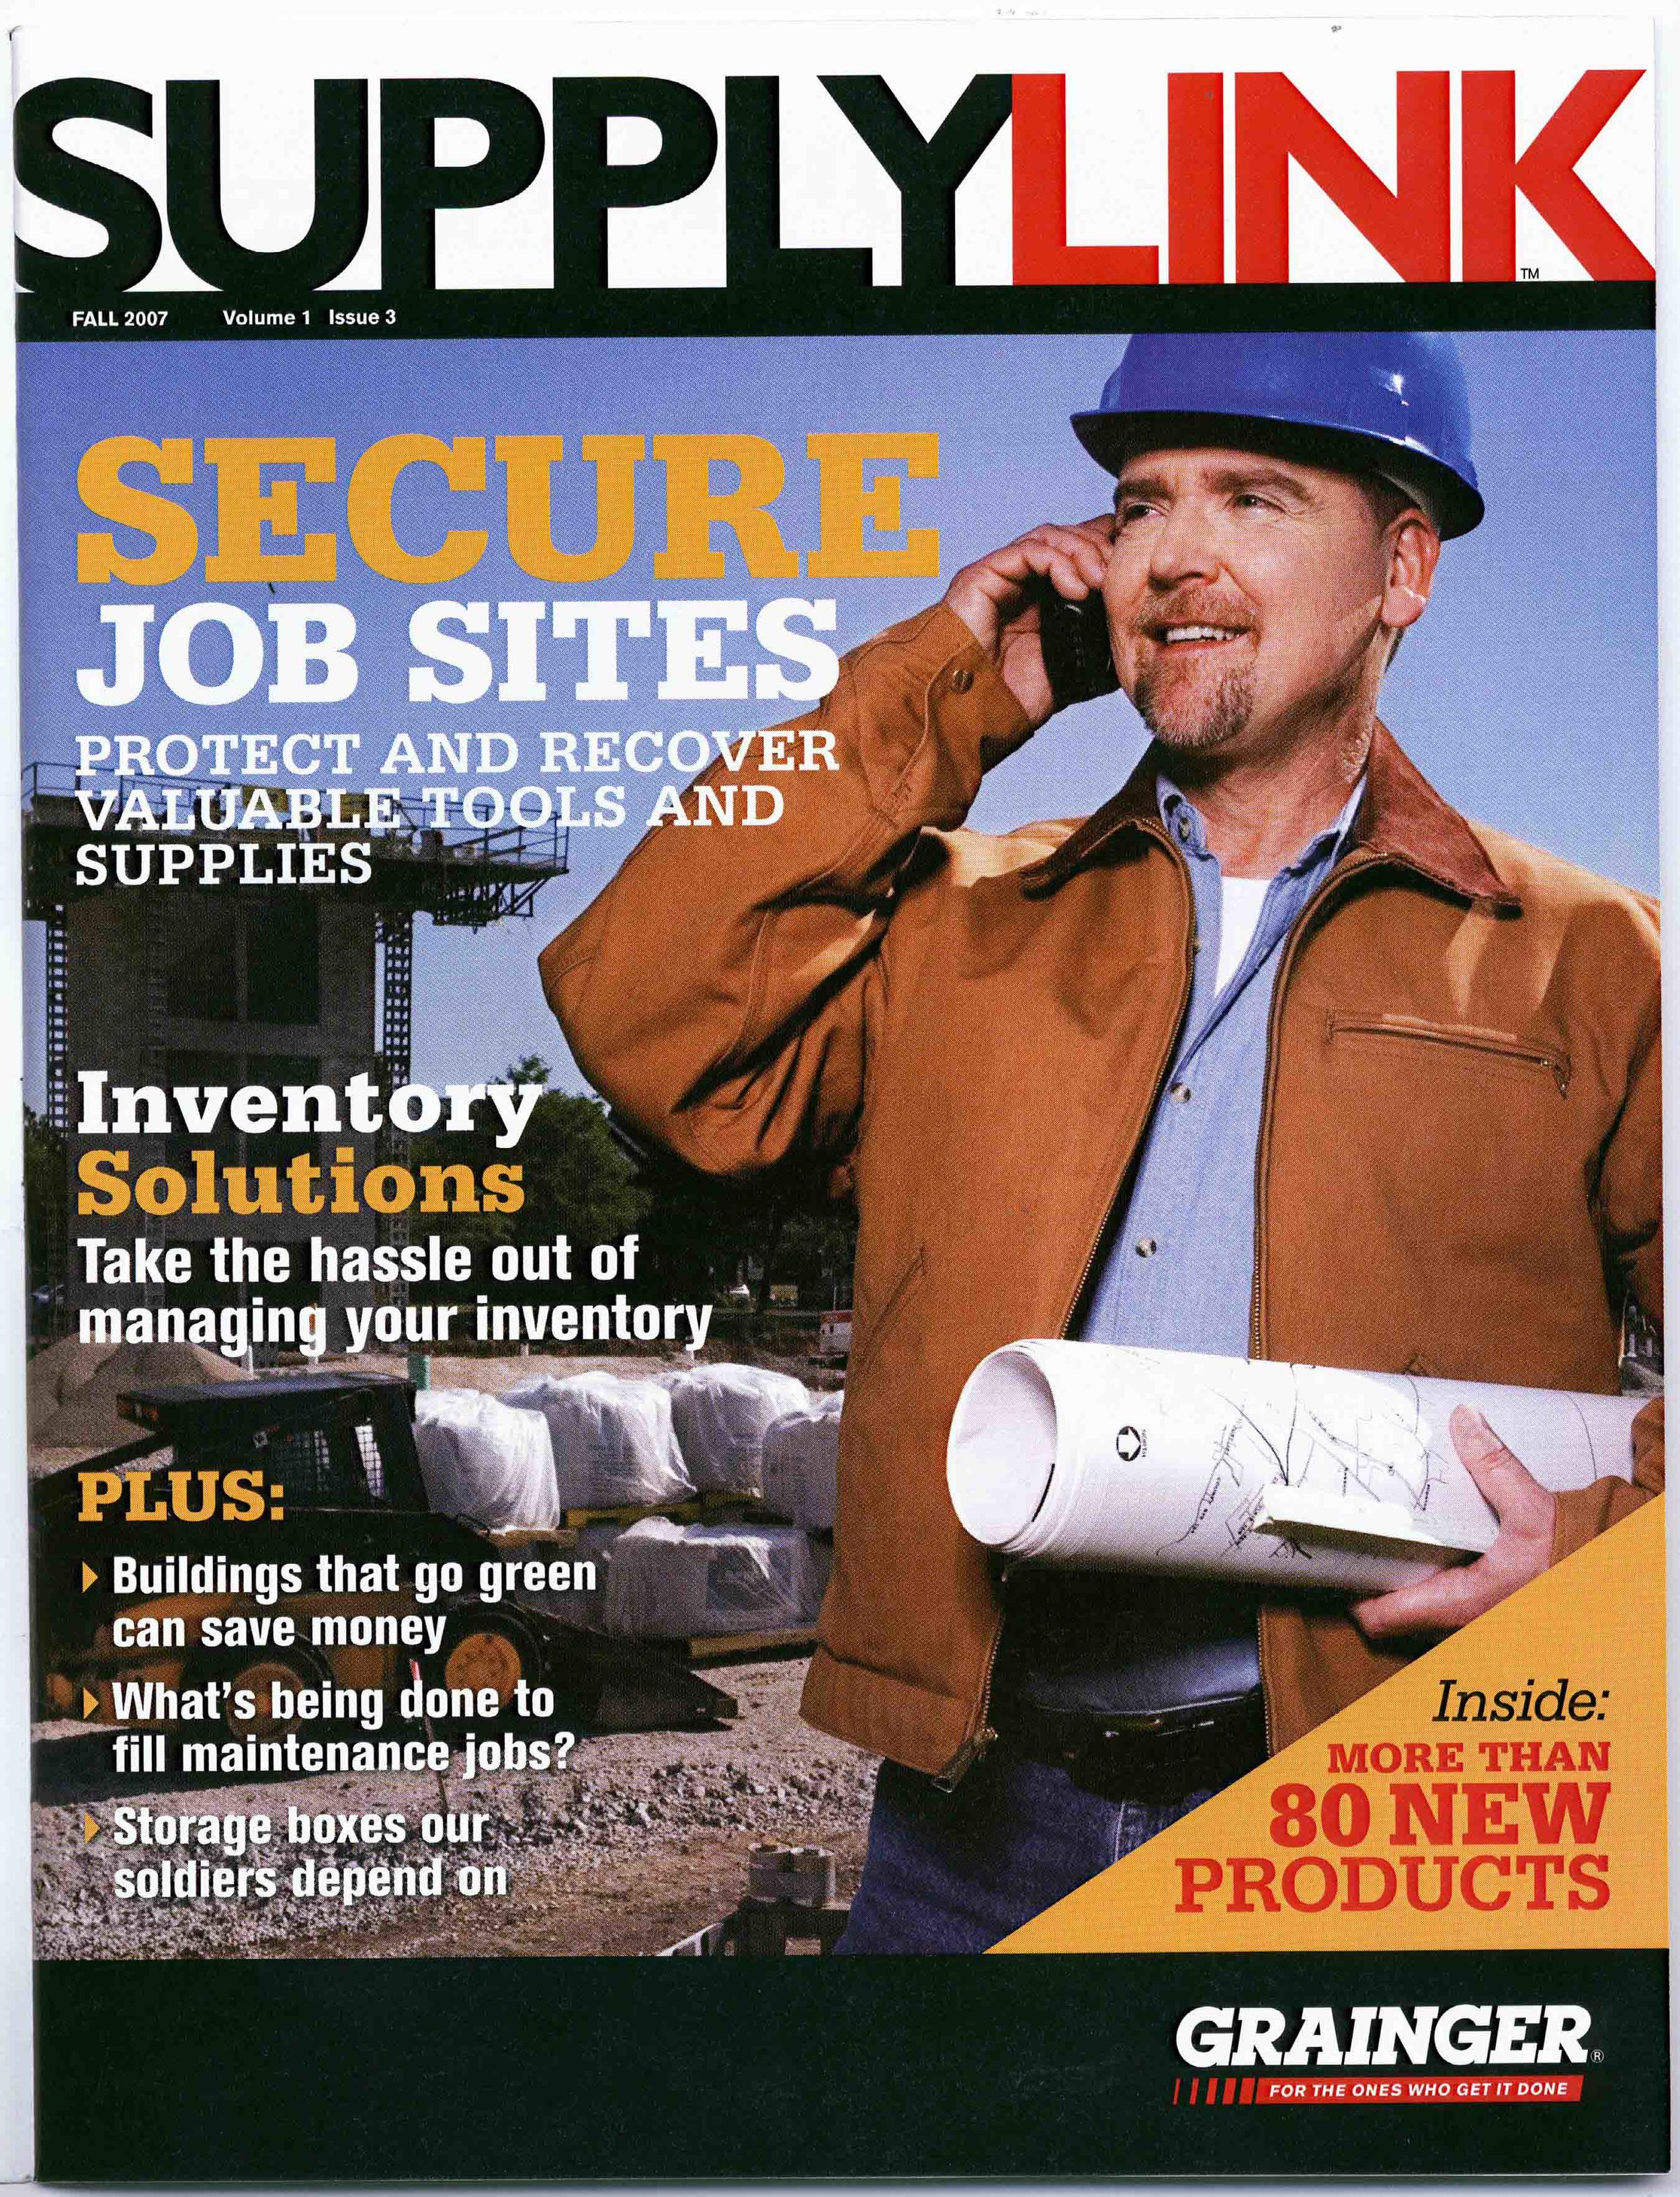 grainger_supply link_cover_fall 07.jpg